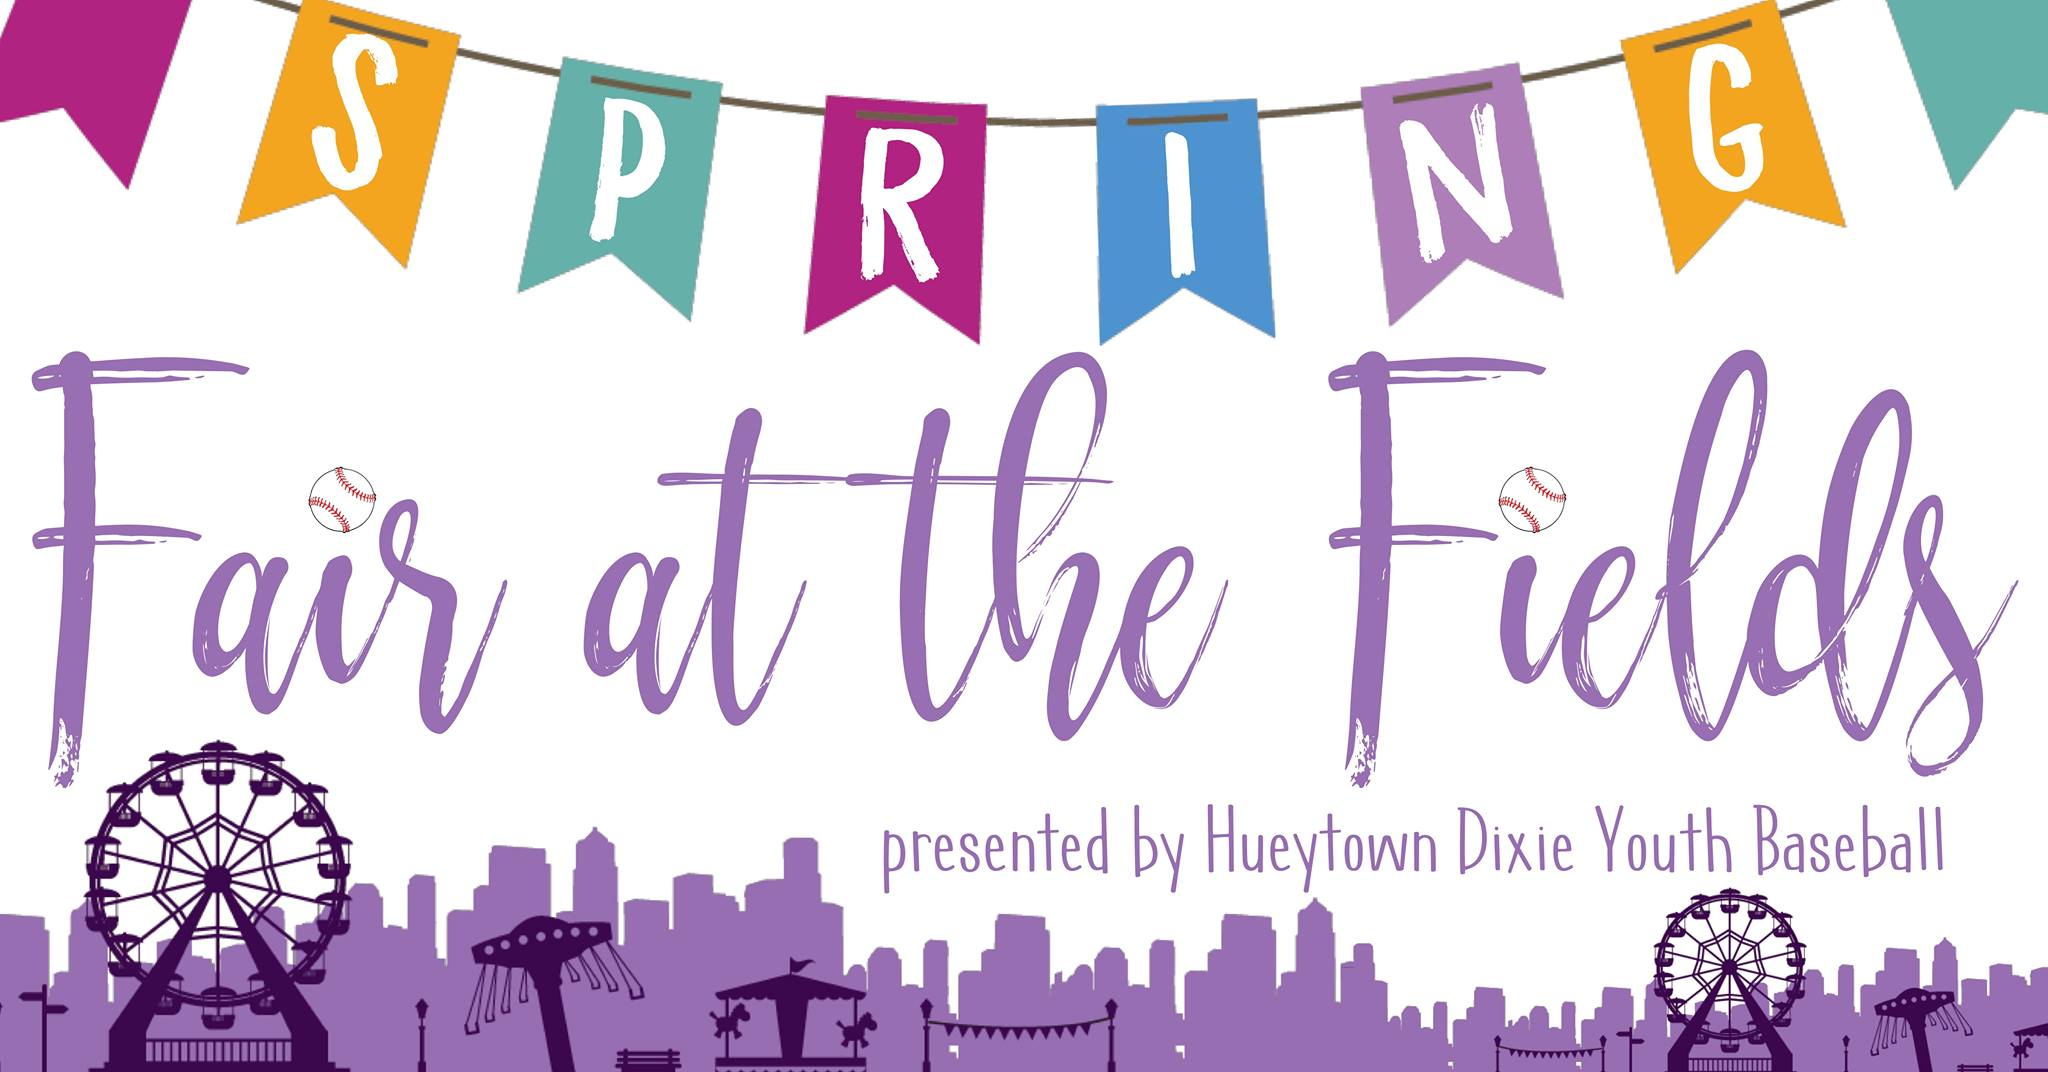 Fair at the Fields presented by Hueytown Dixie Youth